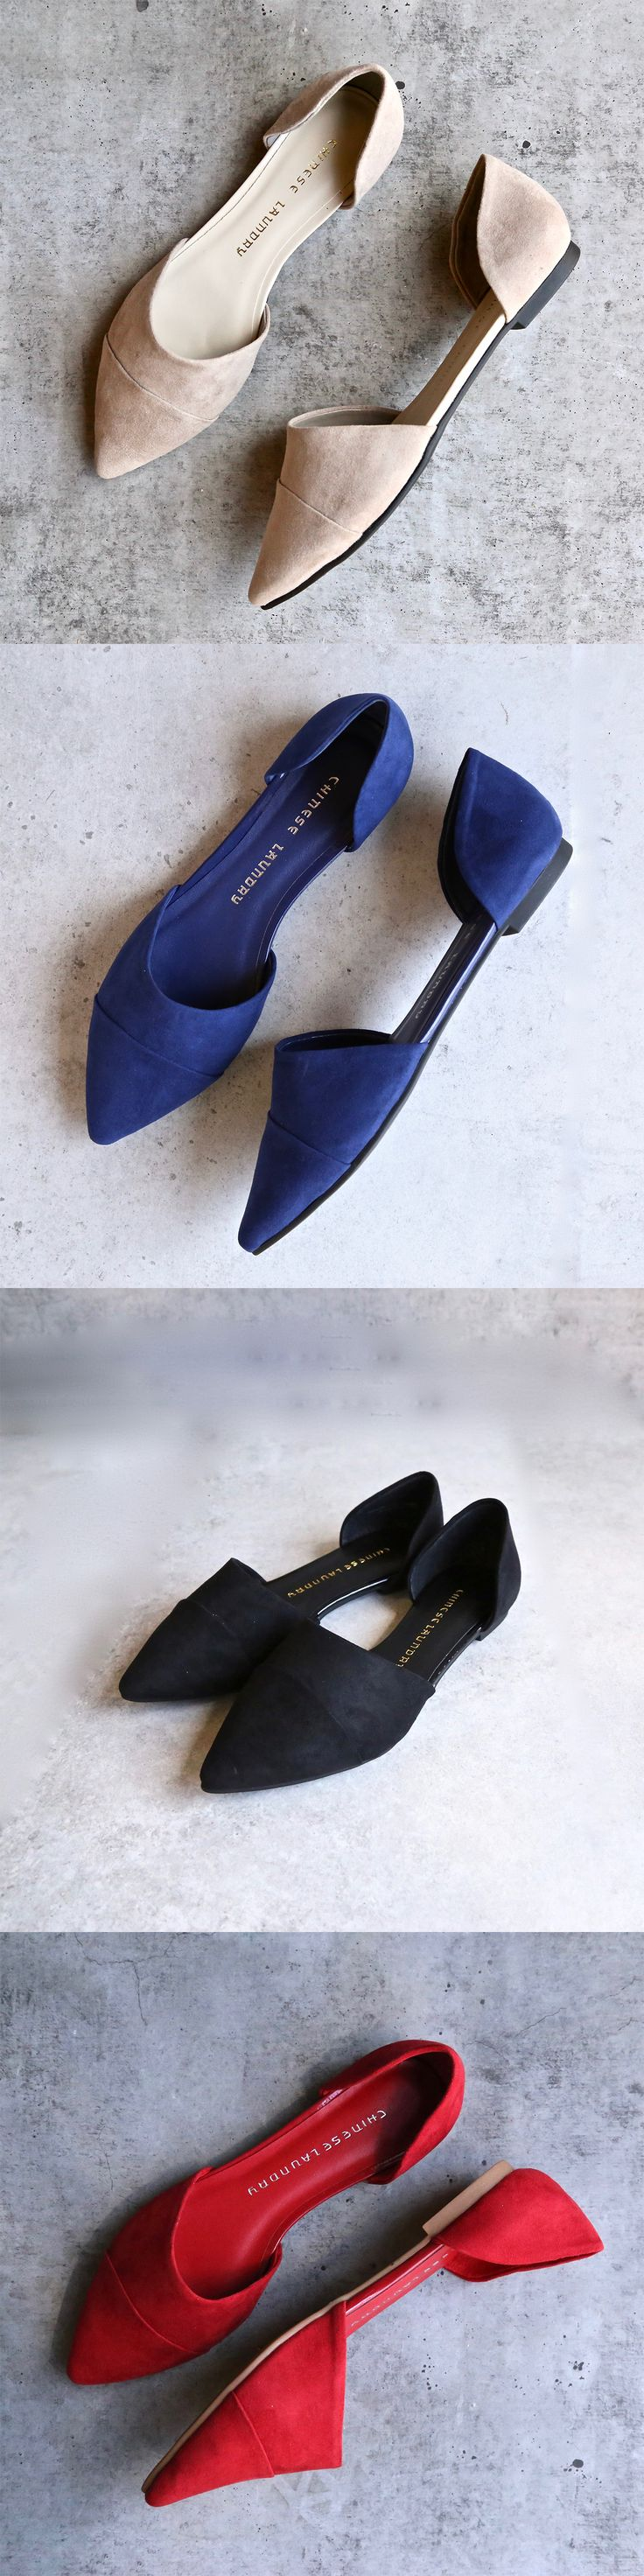 """- Textile - Imported - Synthetic sole - Heel measures approximately 0.25"""" - Slip-on flat featuring pointed toe and d'Orsay silhouette"""